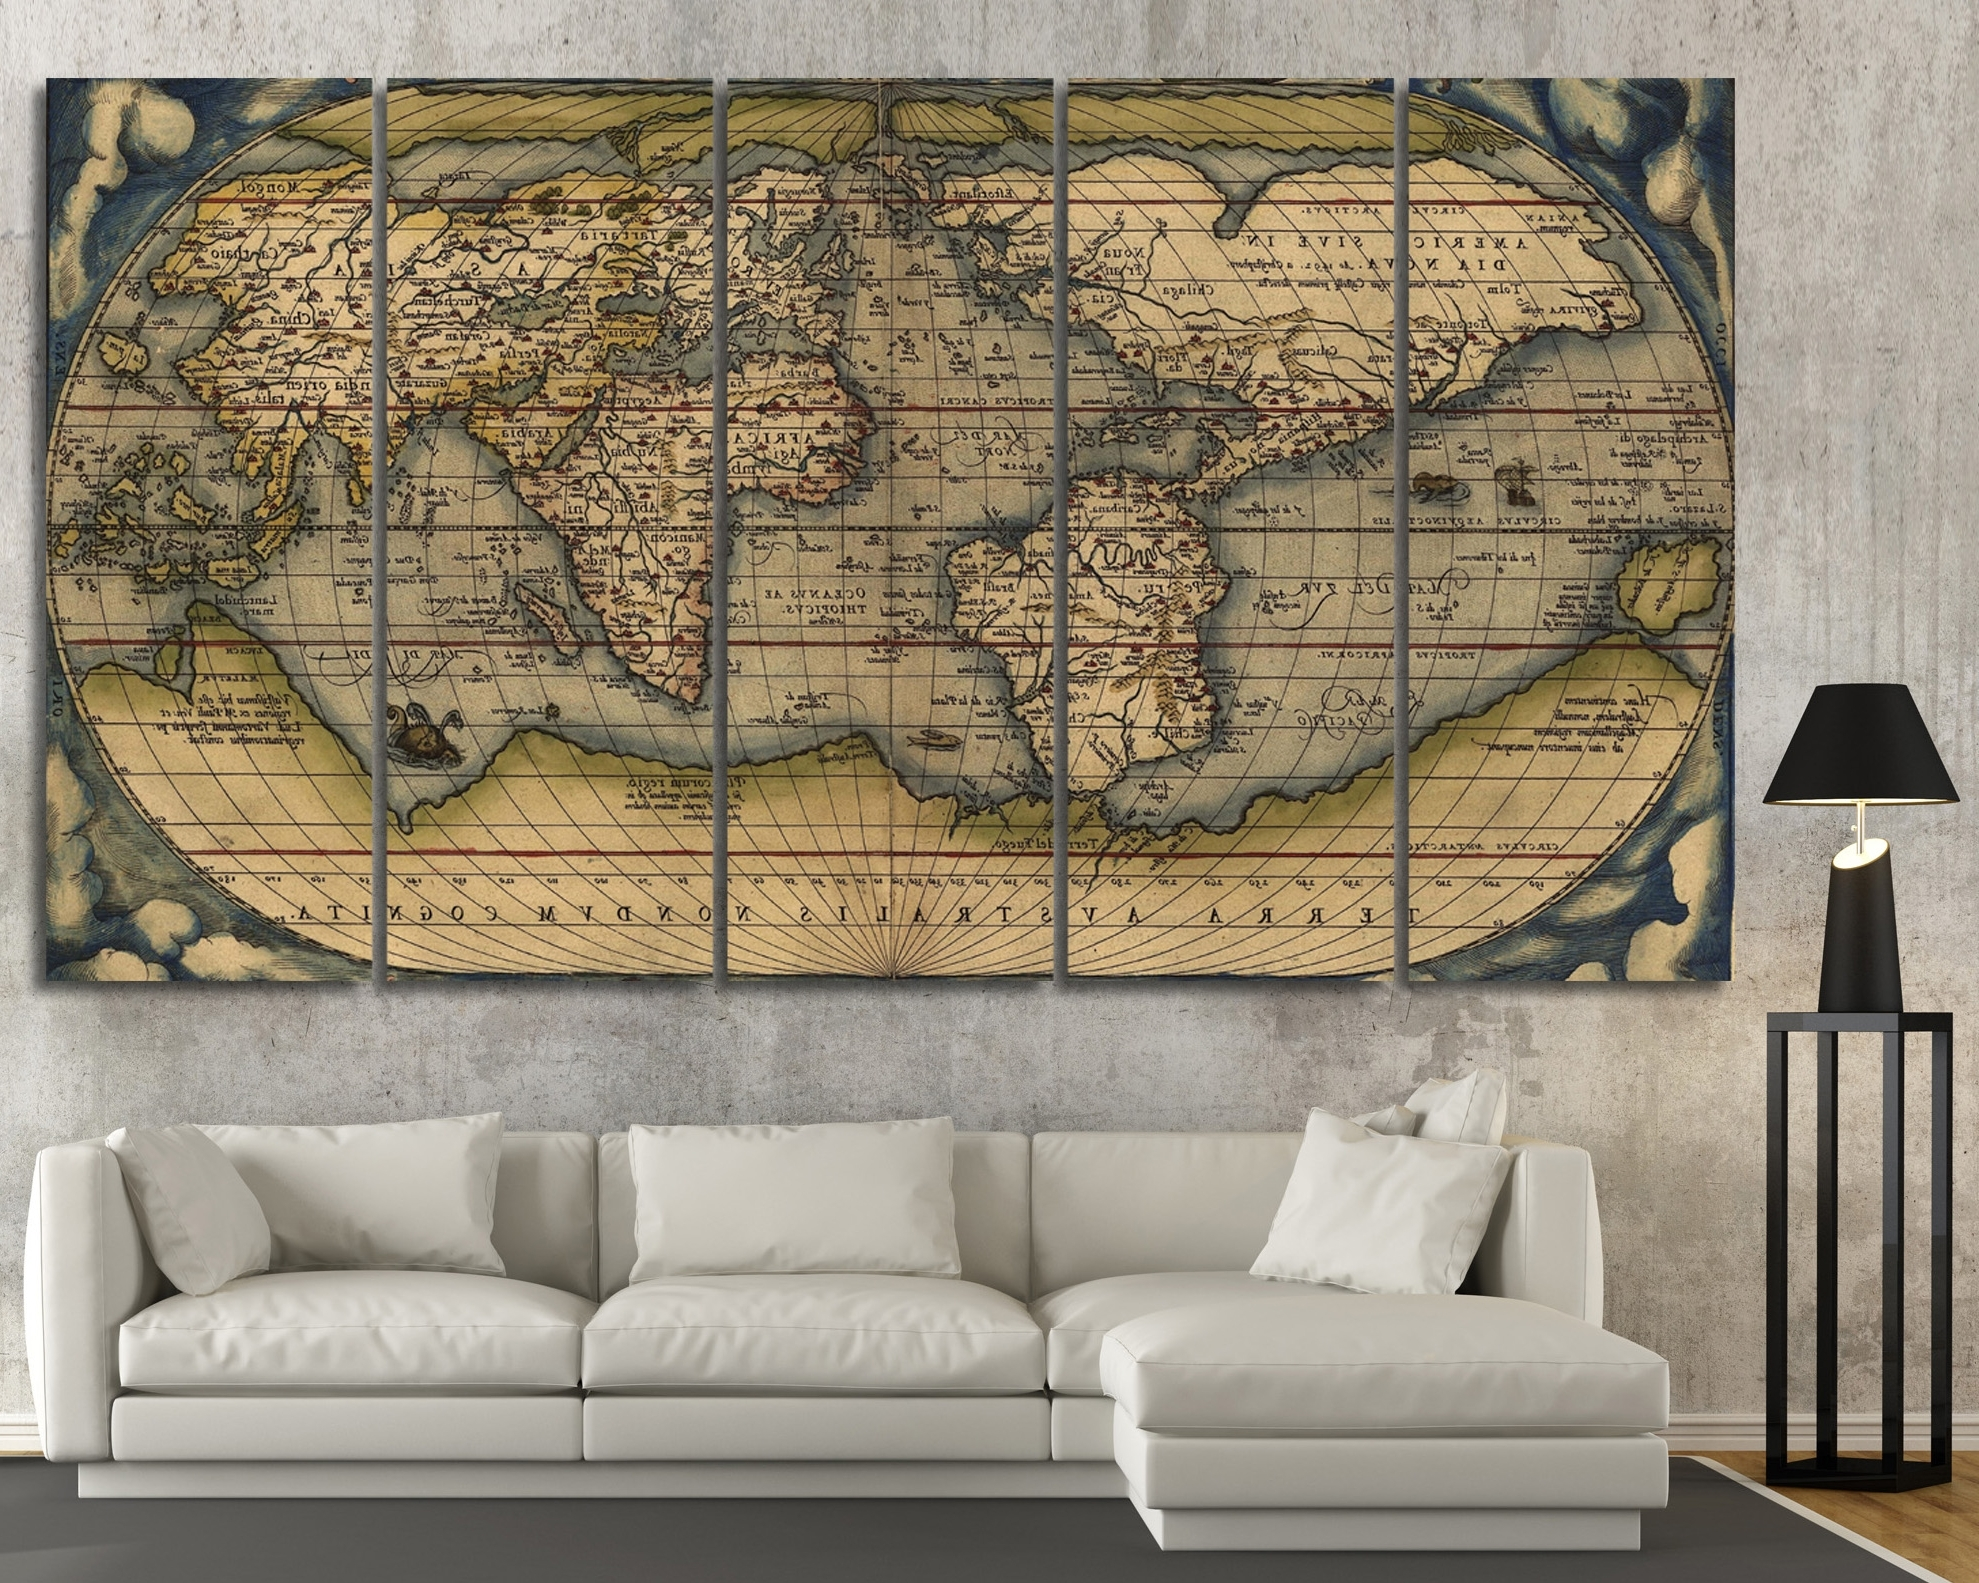 2017 Large Vintage Wall Art Old World Map At Texelprintart In Vintage Wall Art (Gallery 1 of 15)